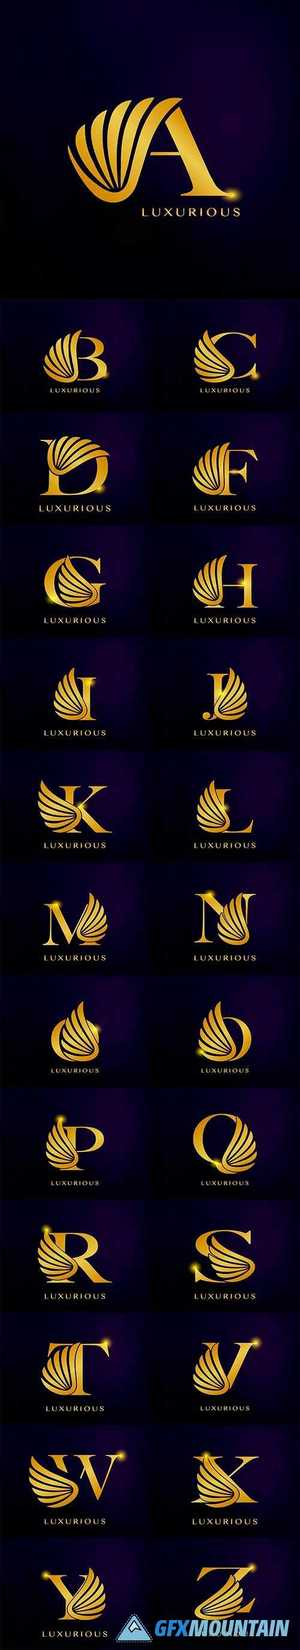 Elegance luxurious wing initial letter logo icon vector design